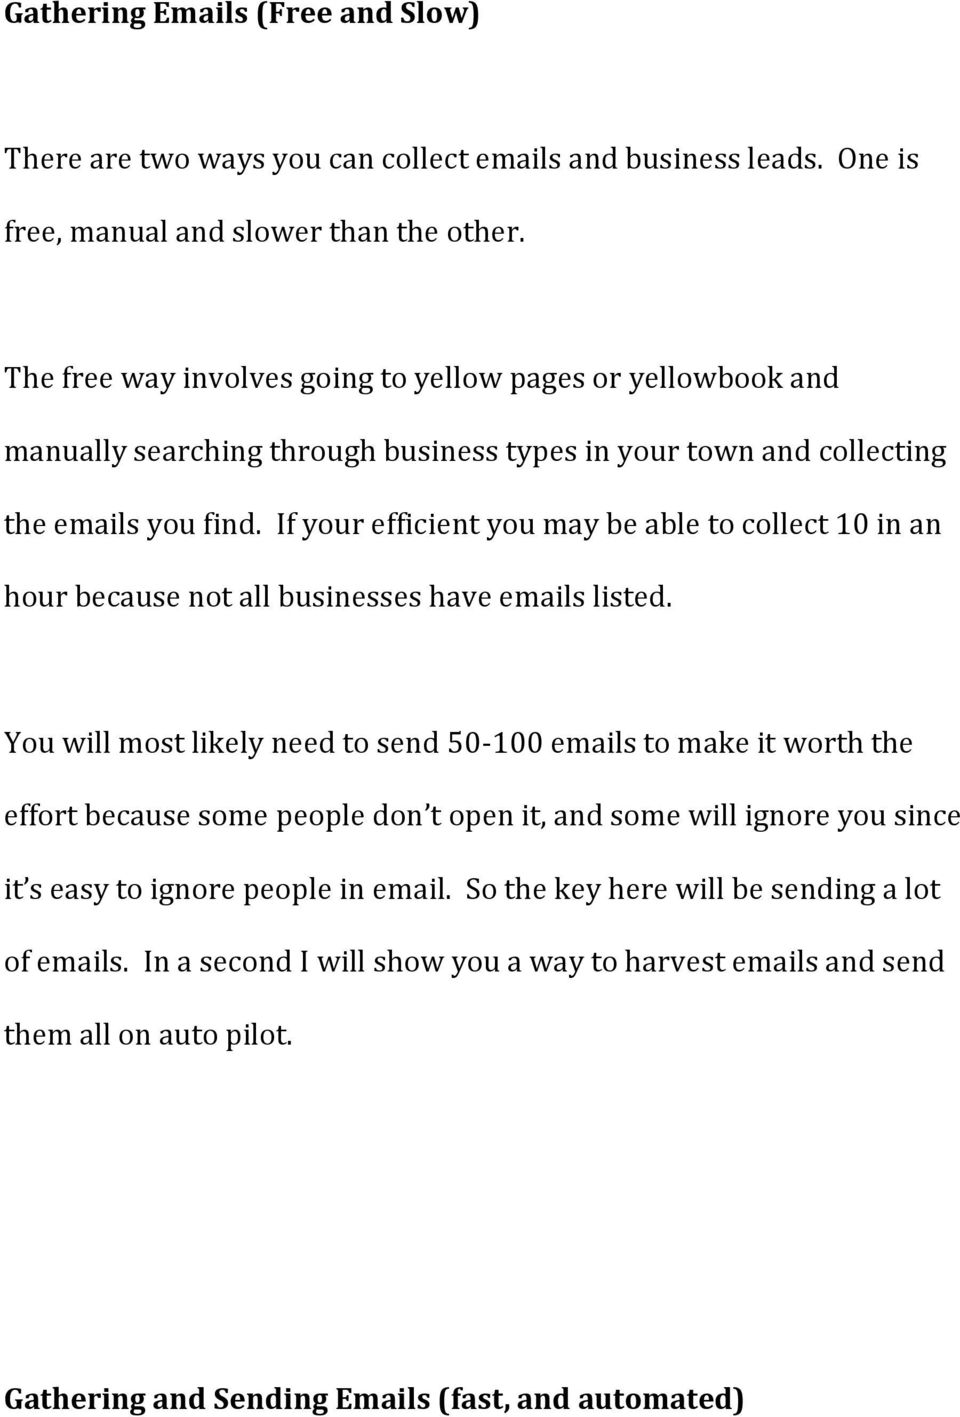 If your efficient you may be able to collect 10 in an hour because not all businesses have emails listed.